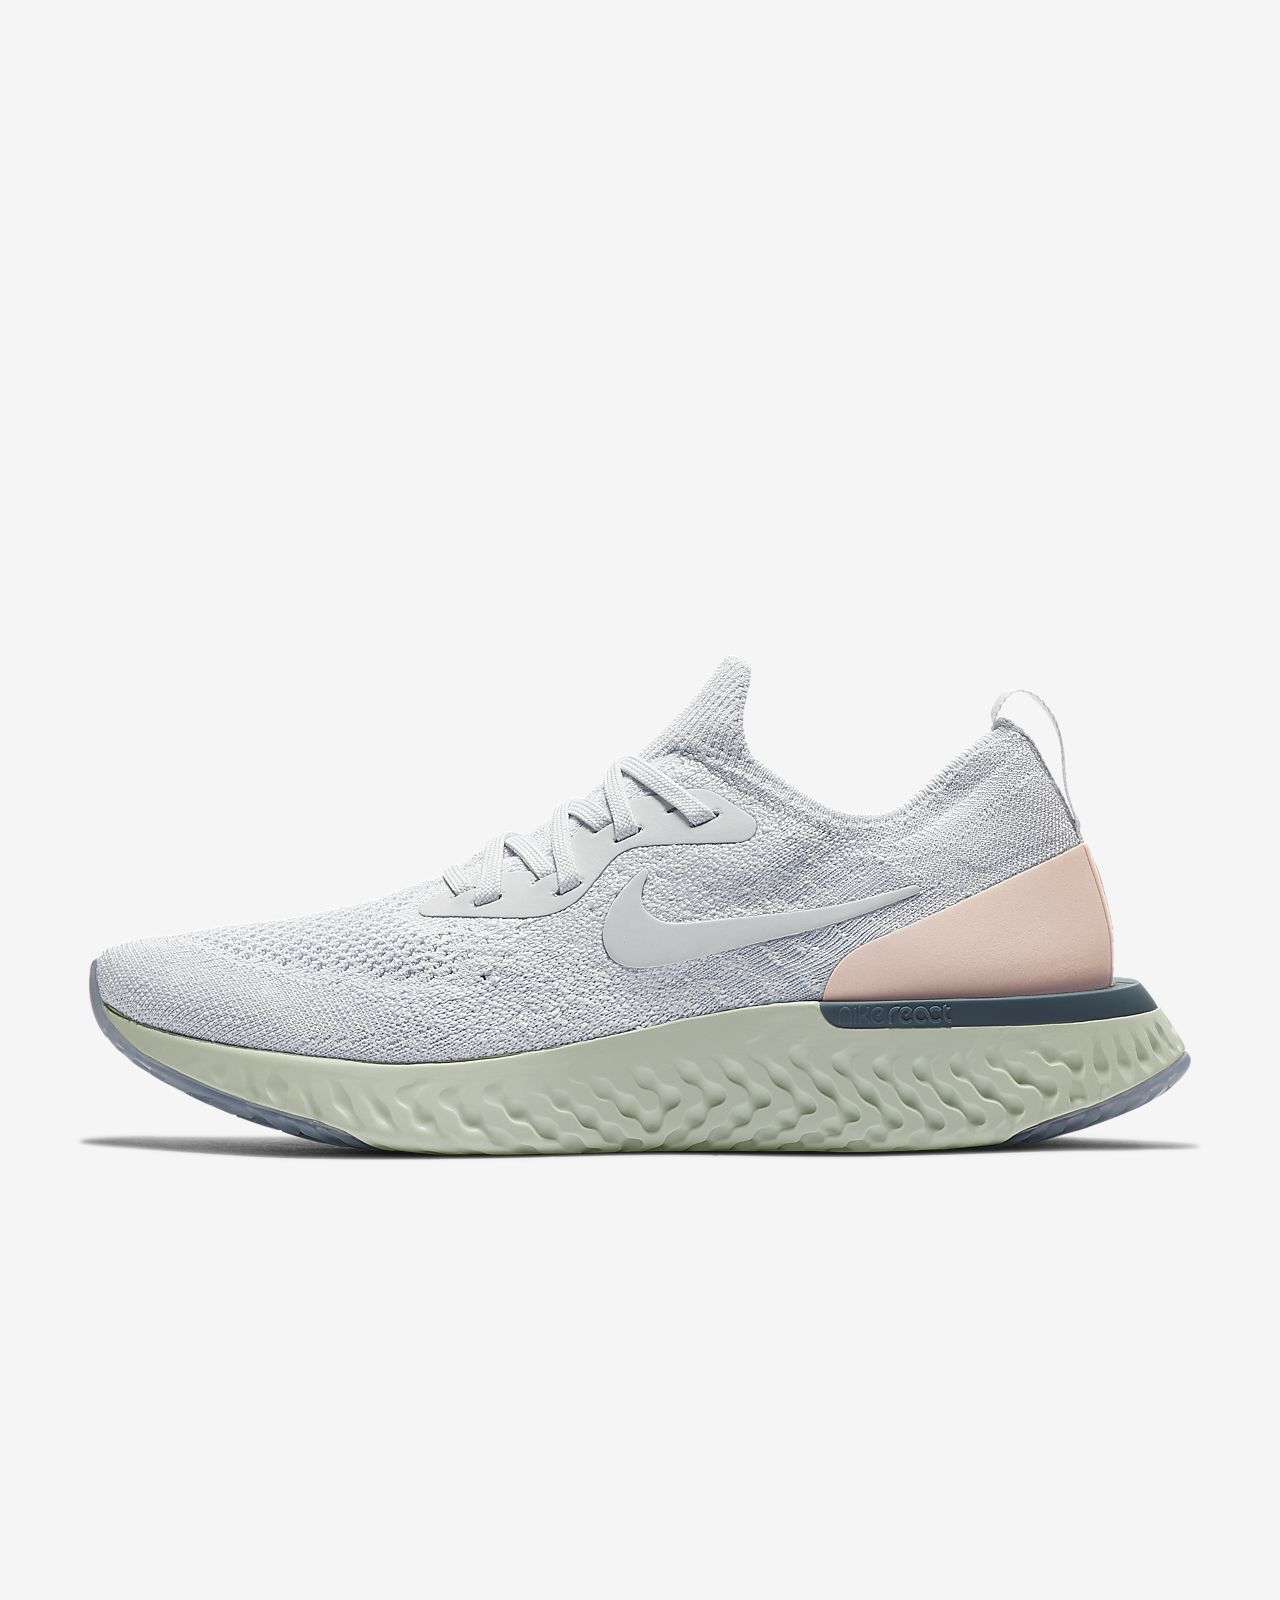 2a7c61fc5db Nike Epic React Flyknit 1 Women s Running Shoe. Nike.com